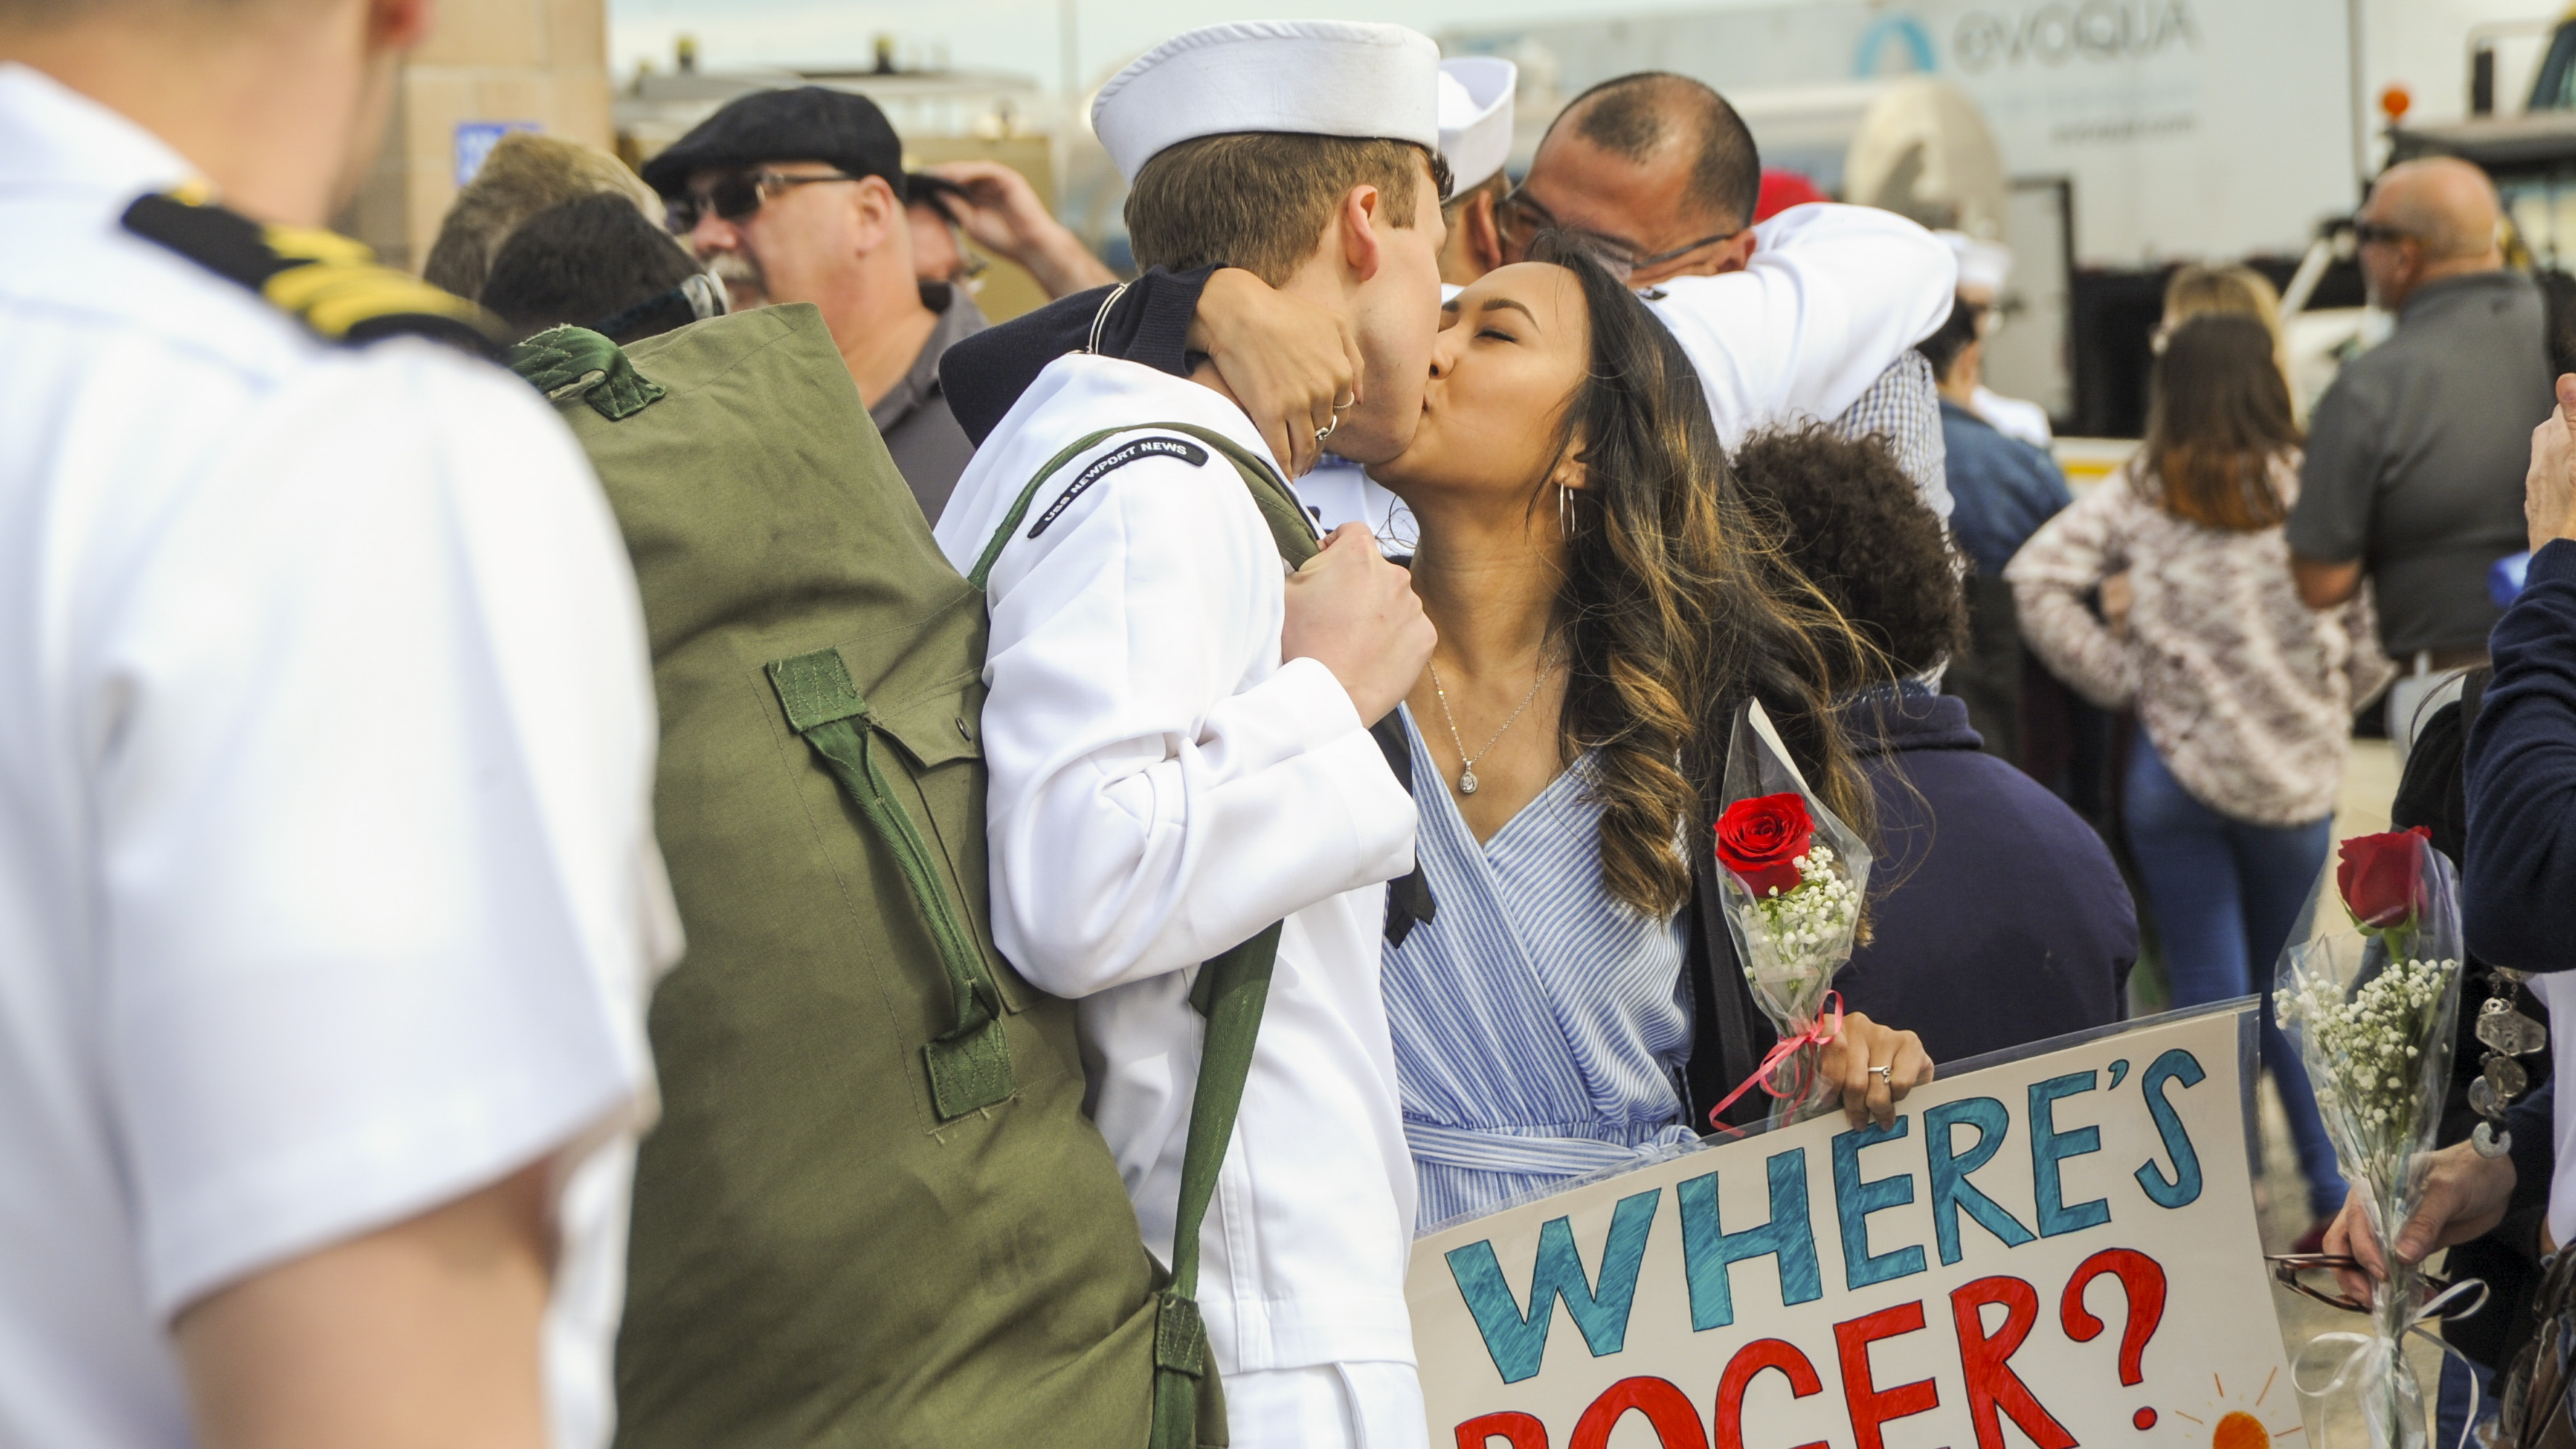 A Sailor assigned to the Los Angeles-class attack submarine USS Newport News (SSN 750) receives kiss from a loved one, at Naval Station Norfolk, after returning from a seven month deployment to the U.S. 6th Fleet area of operations. (MC Darryl Wood/Navy)